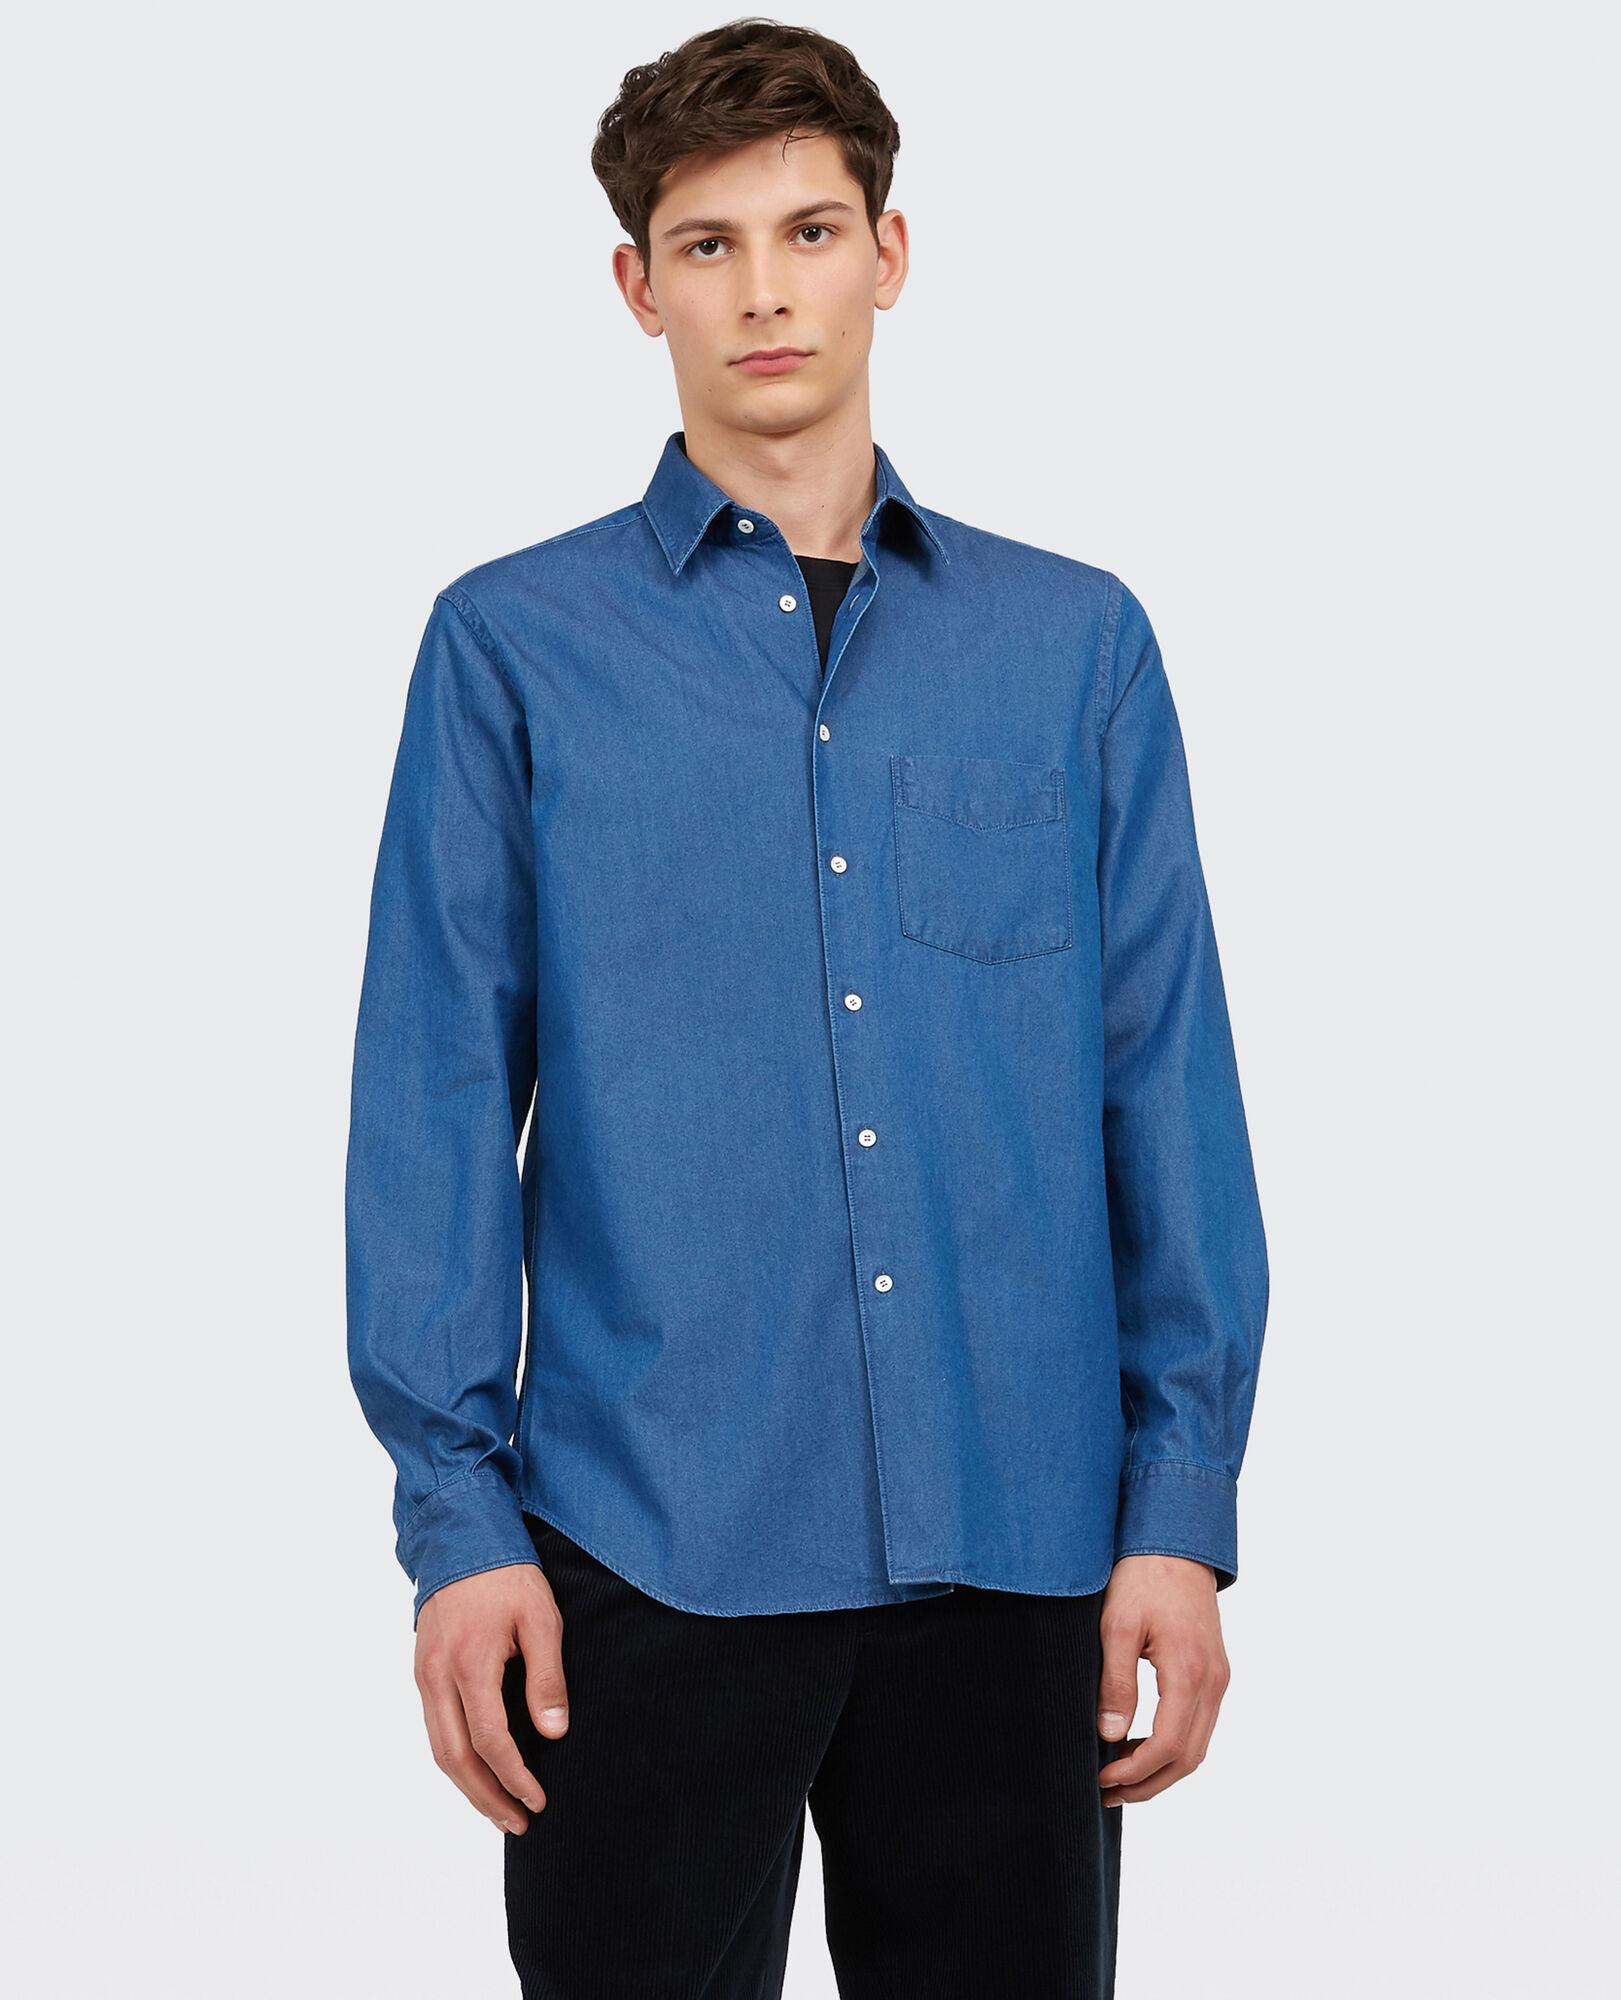 official shop hot new products dirt cheap Aspesi Indigo Cotton Shirt in Blue for Men - Lyst